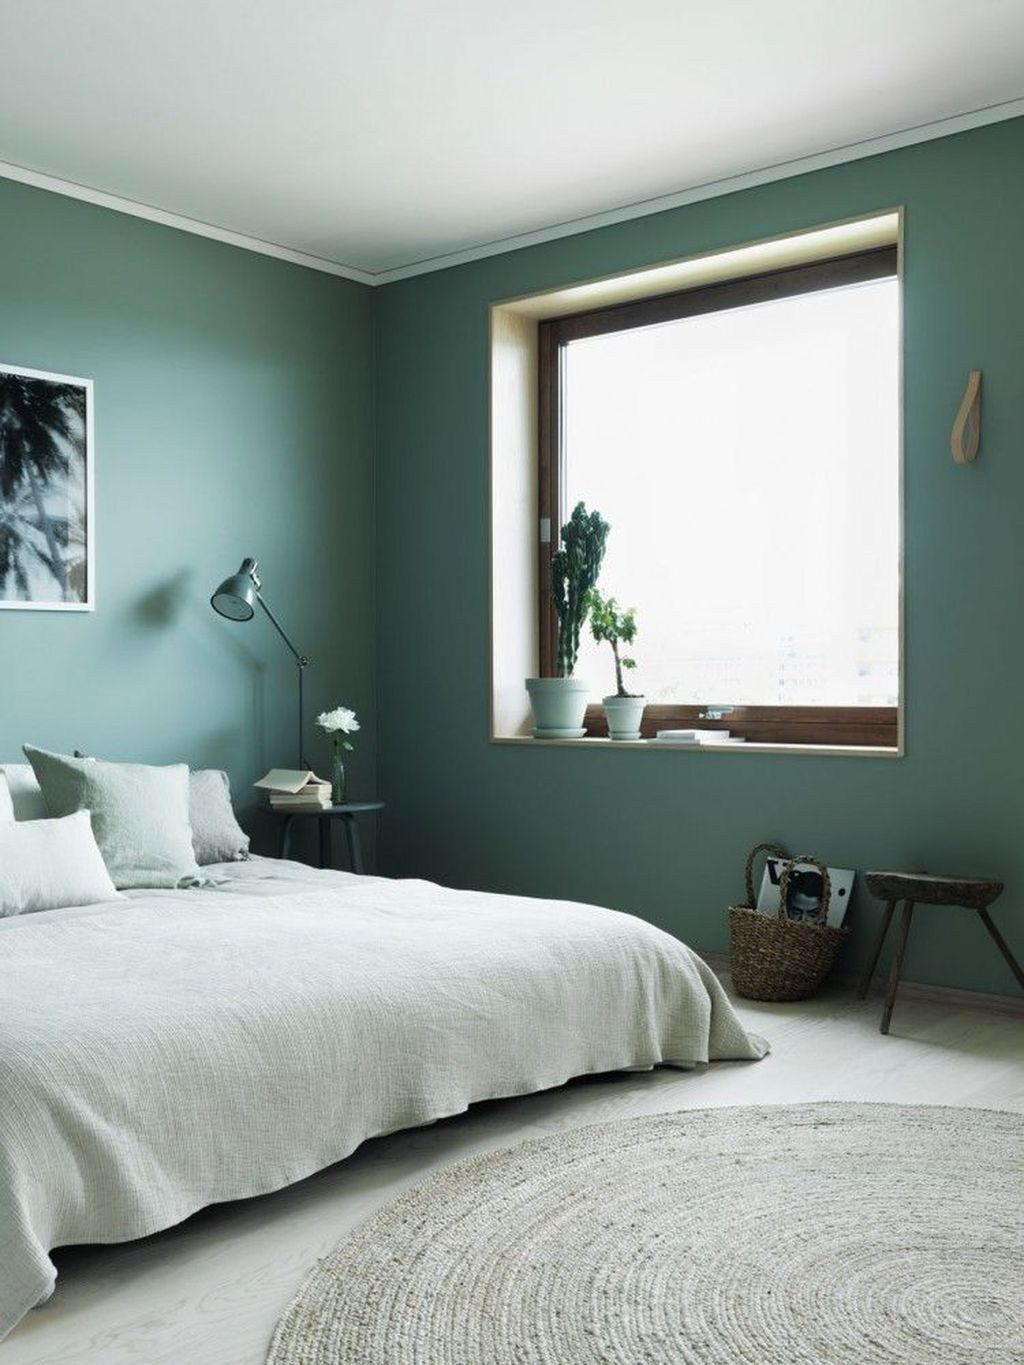 50 Beautiful And Calm Green Bedroom Decoration Ideas Trendehouse Bedroom Green Home Decor Bedroom Bedroom Colors